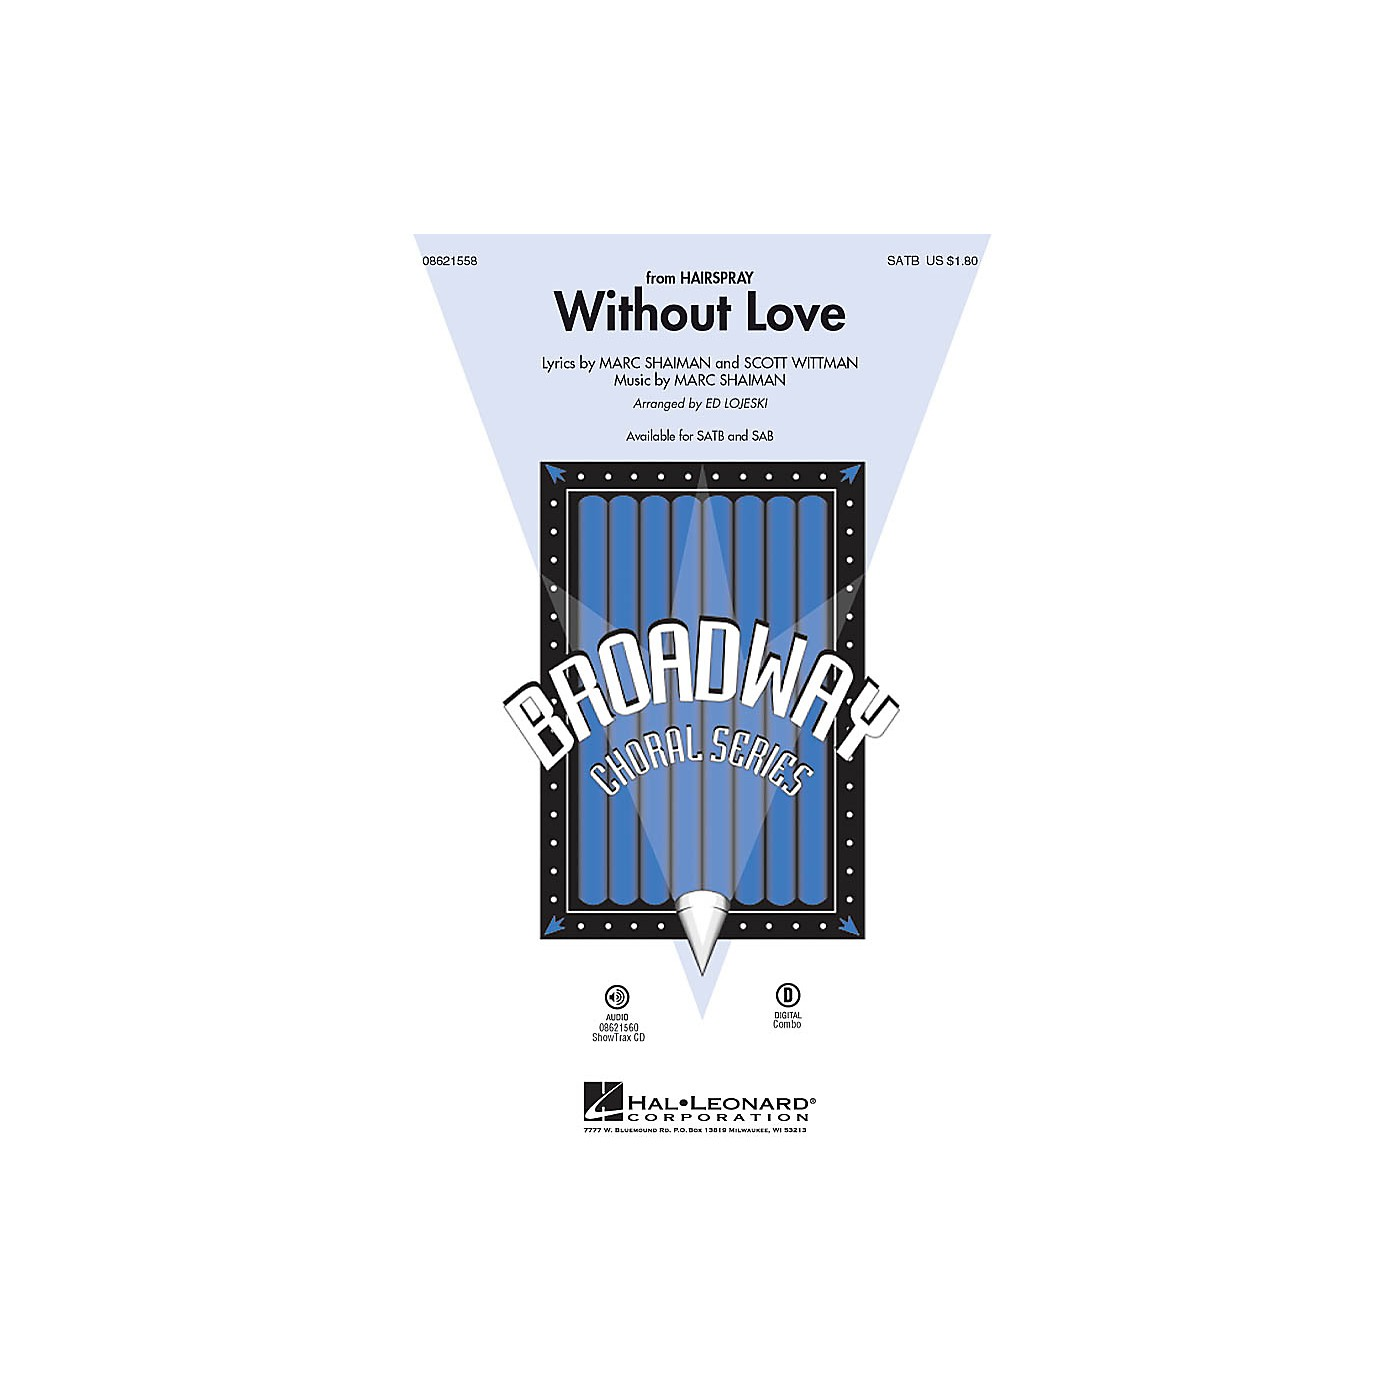 Hal Leonard Without Love (from Hairspray) SATB arranged by Ed Lojeski thumbnail